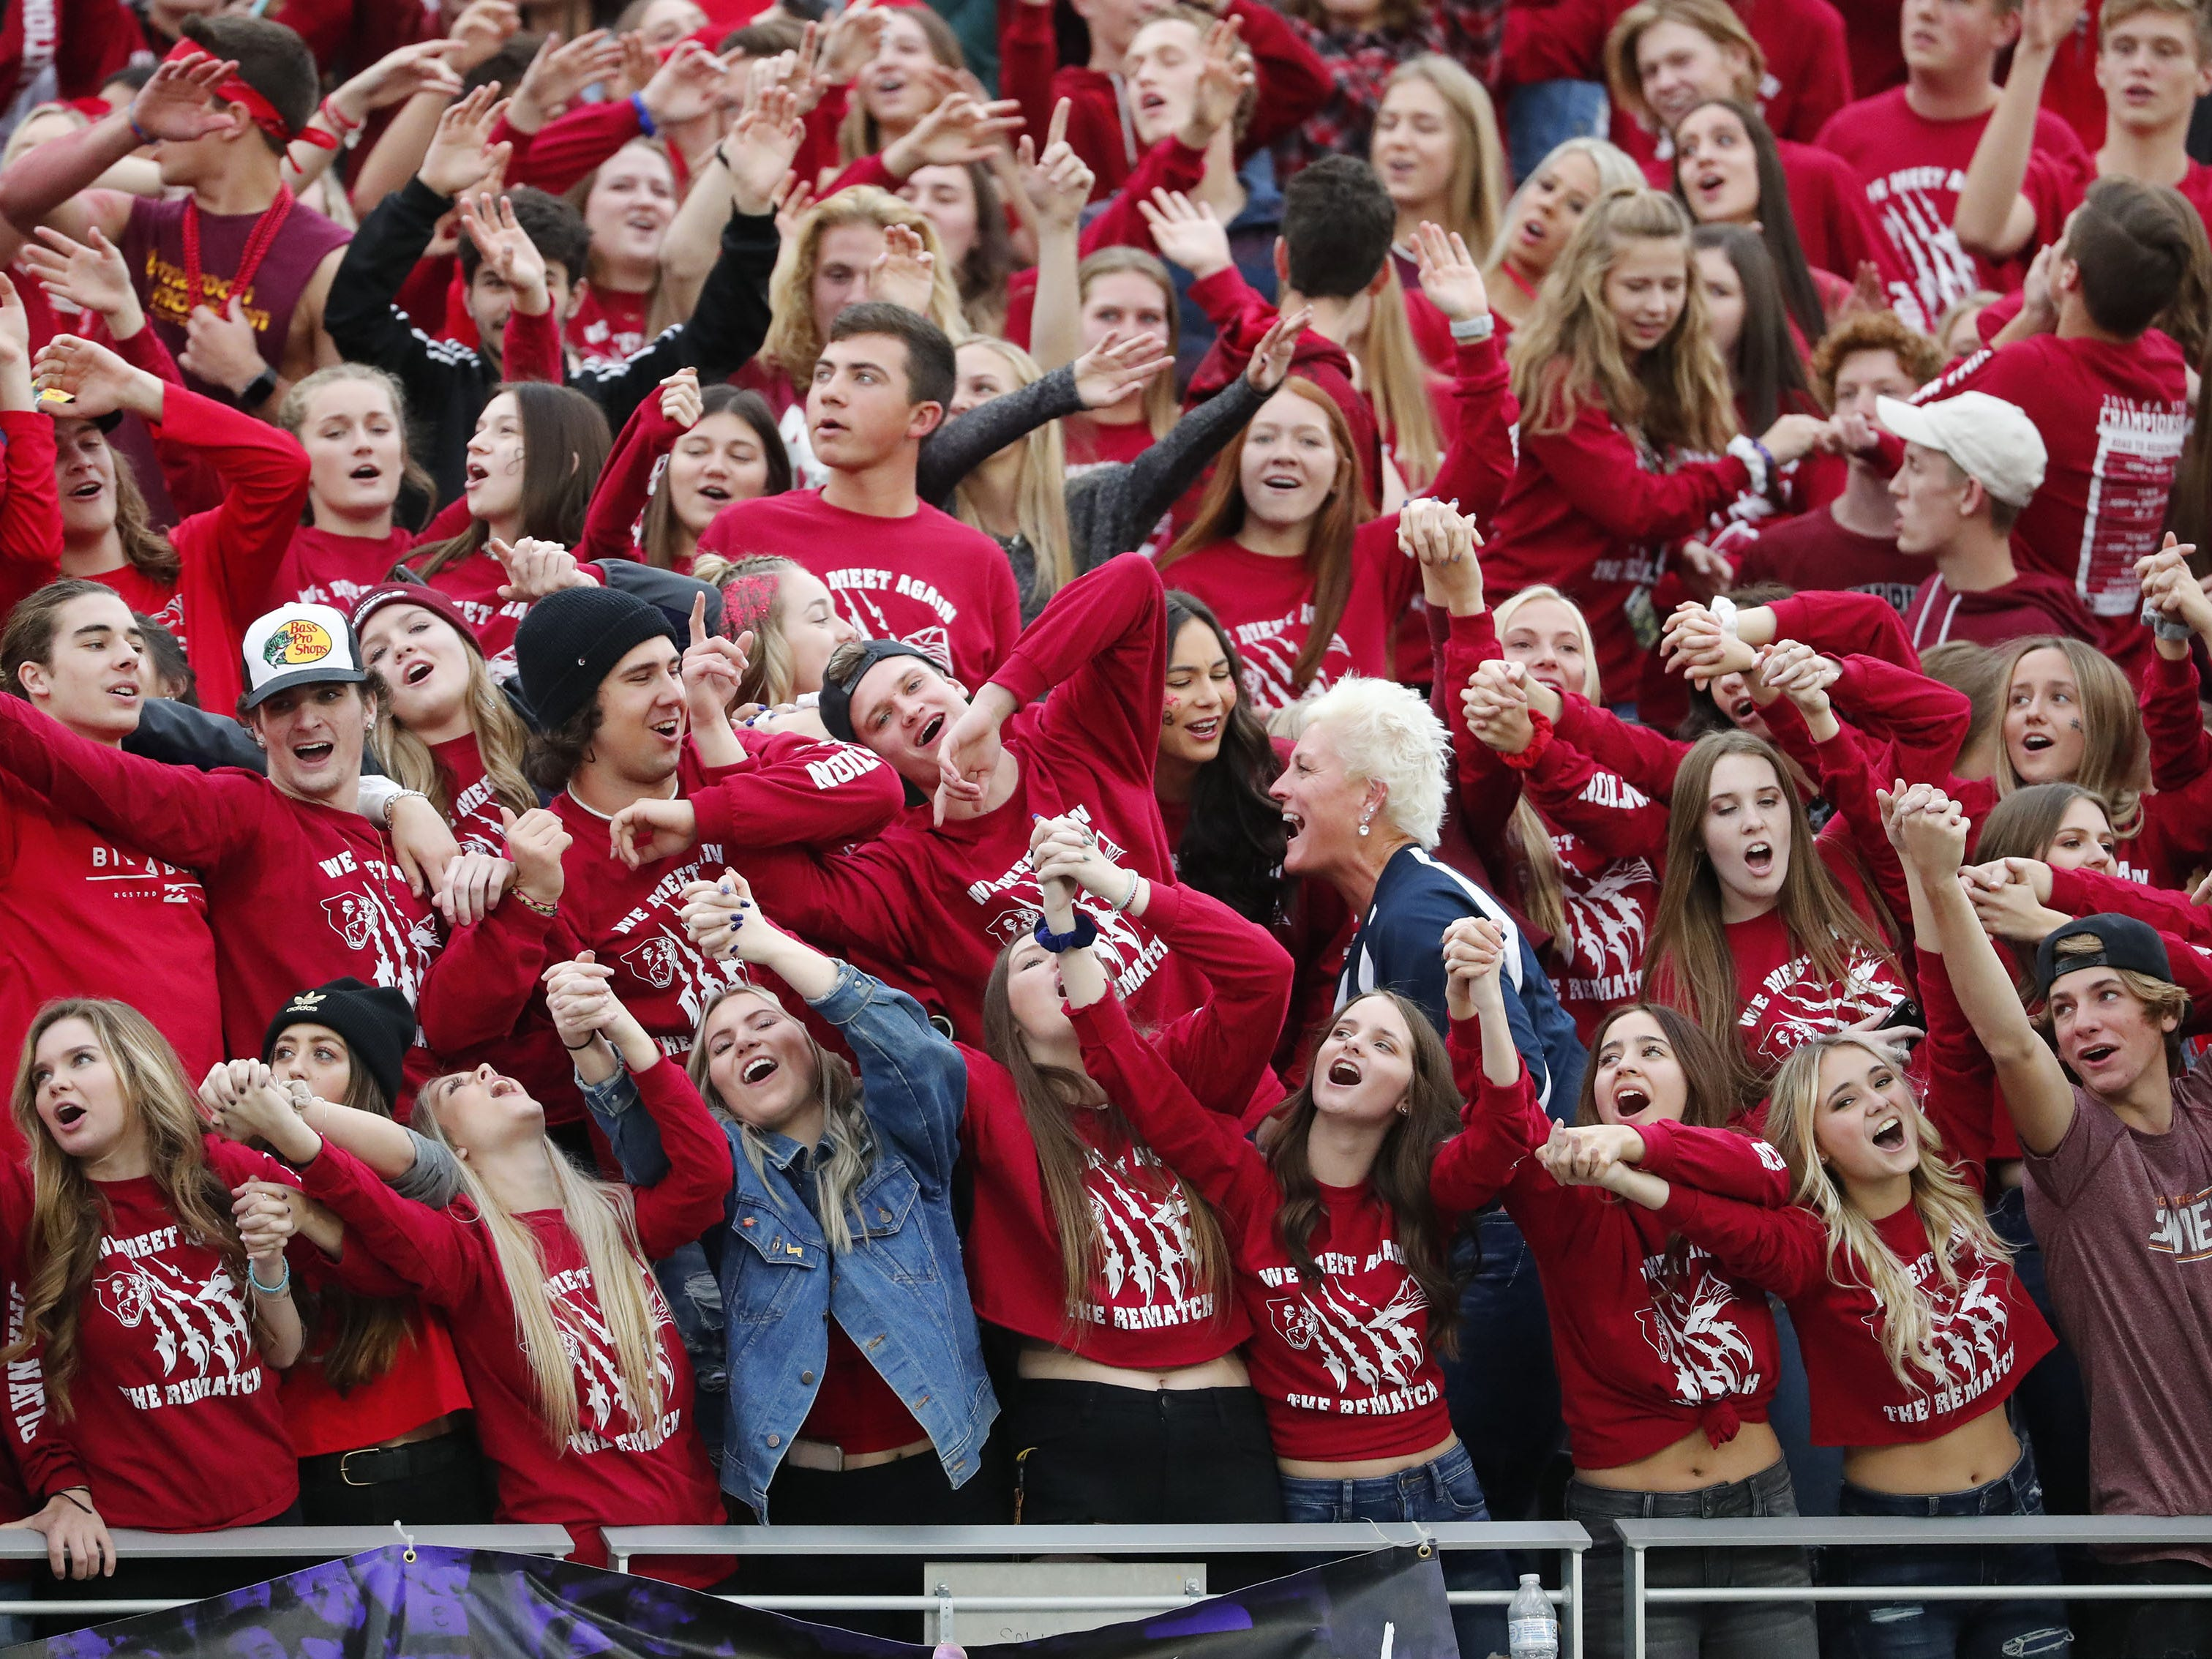 Perry students sing along during the 6A state football championship game against Chandler at Sun Devil Stadium December 1, 2018. #azhsfb